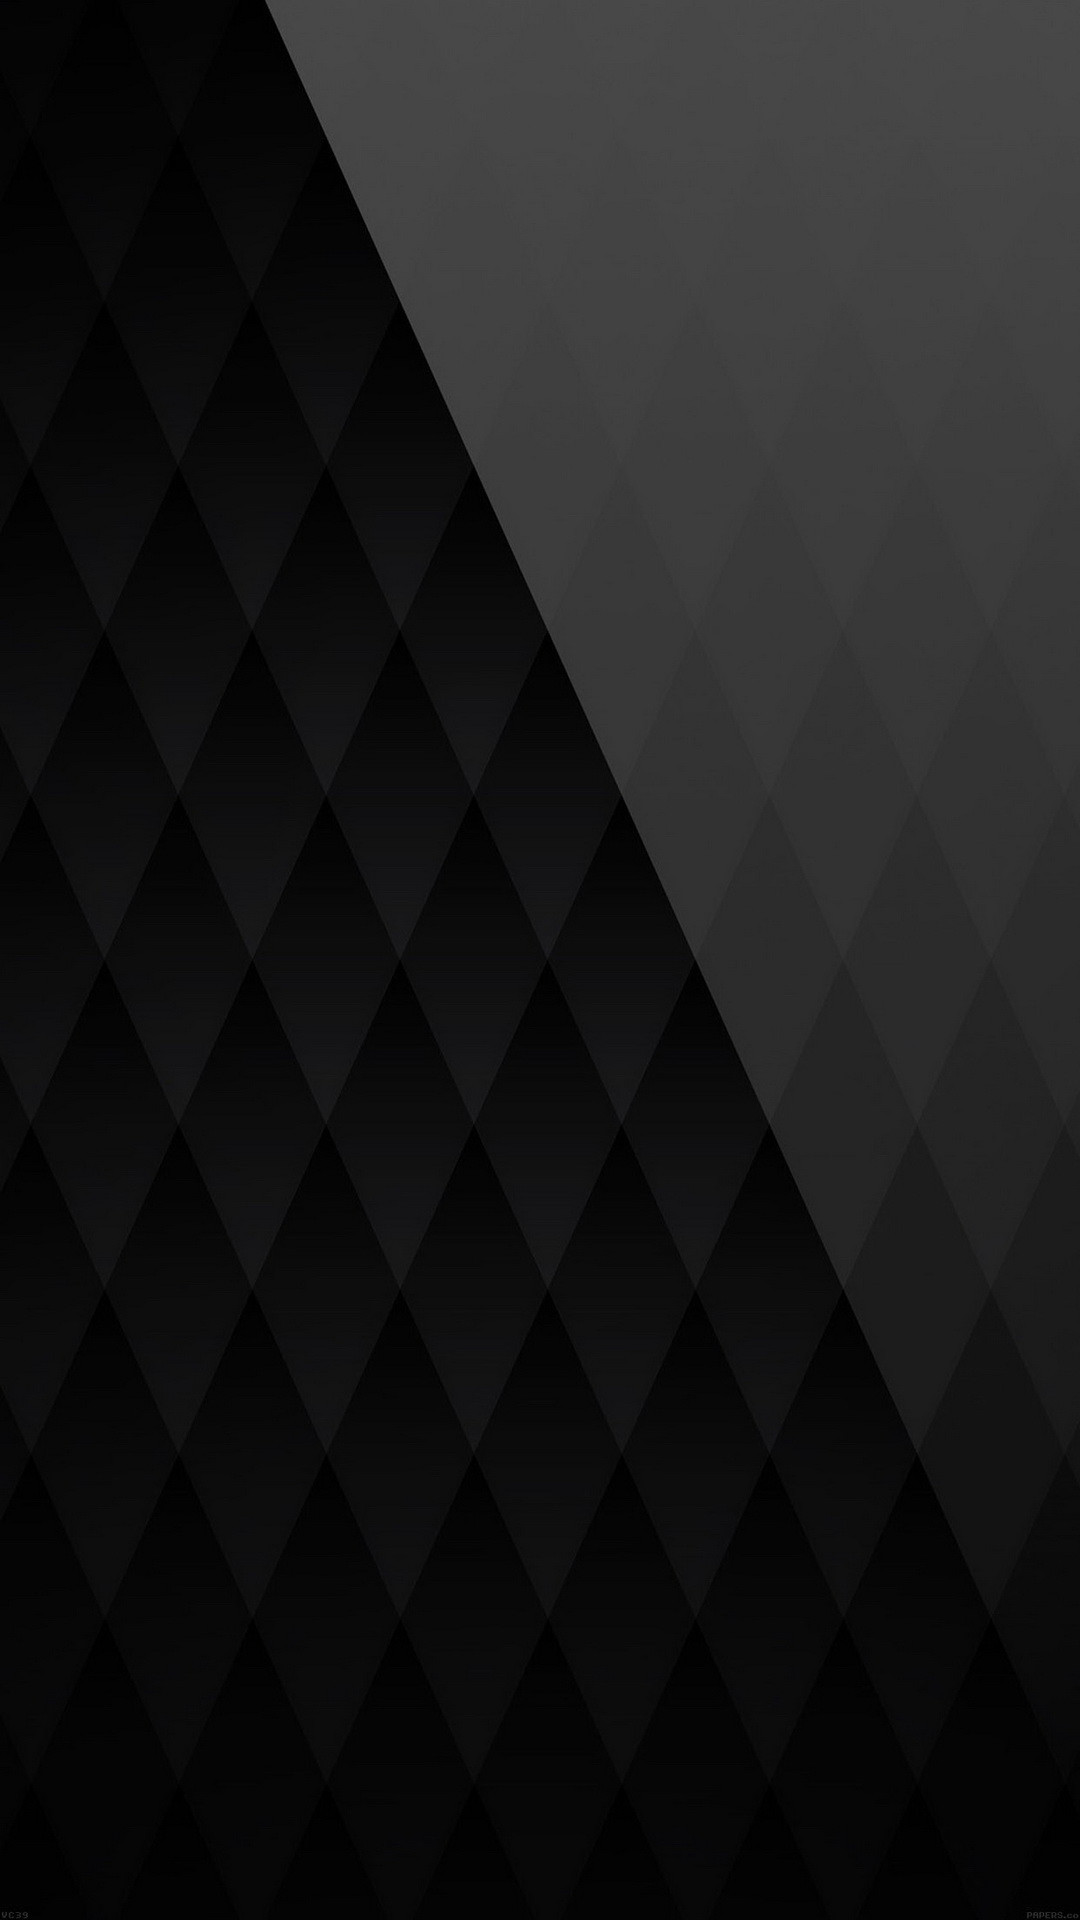 1080x1920 Black Diamond Pattern Angle Android Wallpaper ...